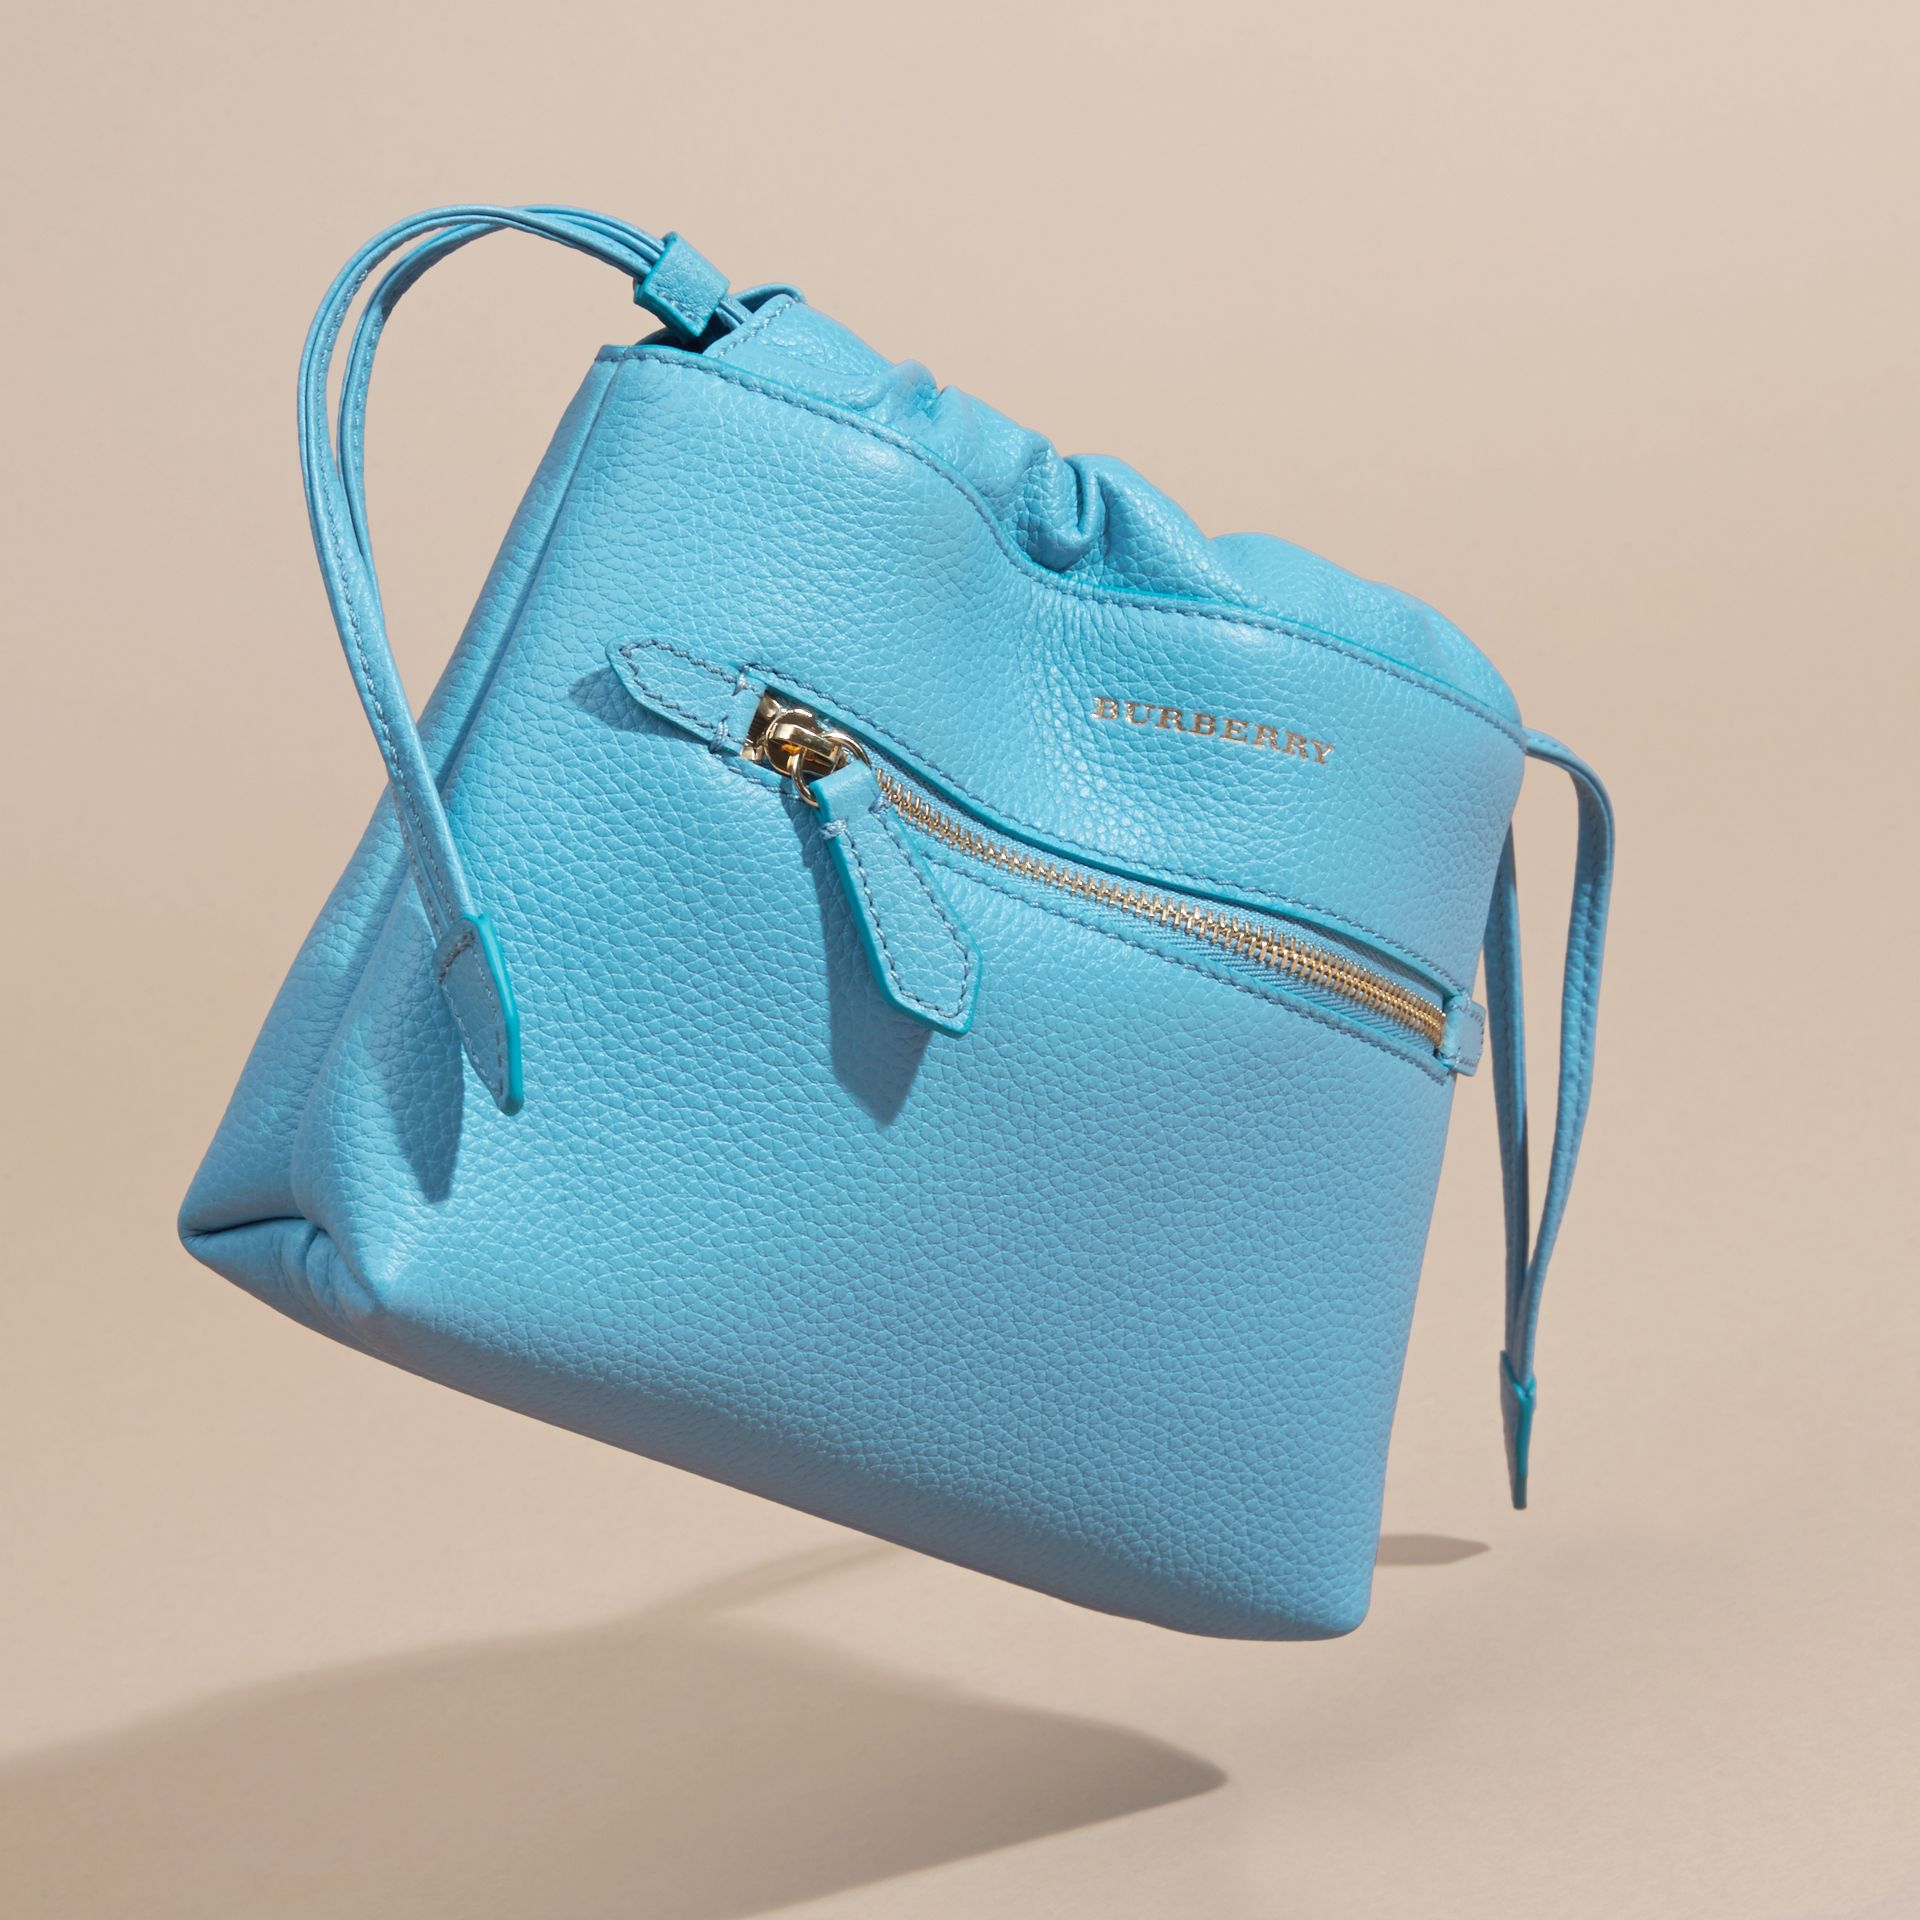 Bright mineral blue The Mini Crush in Grainy Leather Bright Mineral Blue - gallery image 3